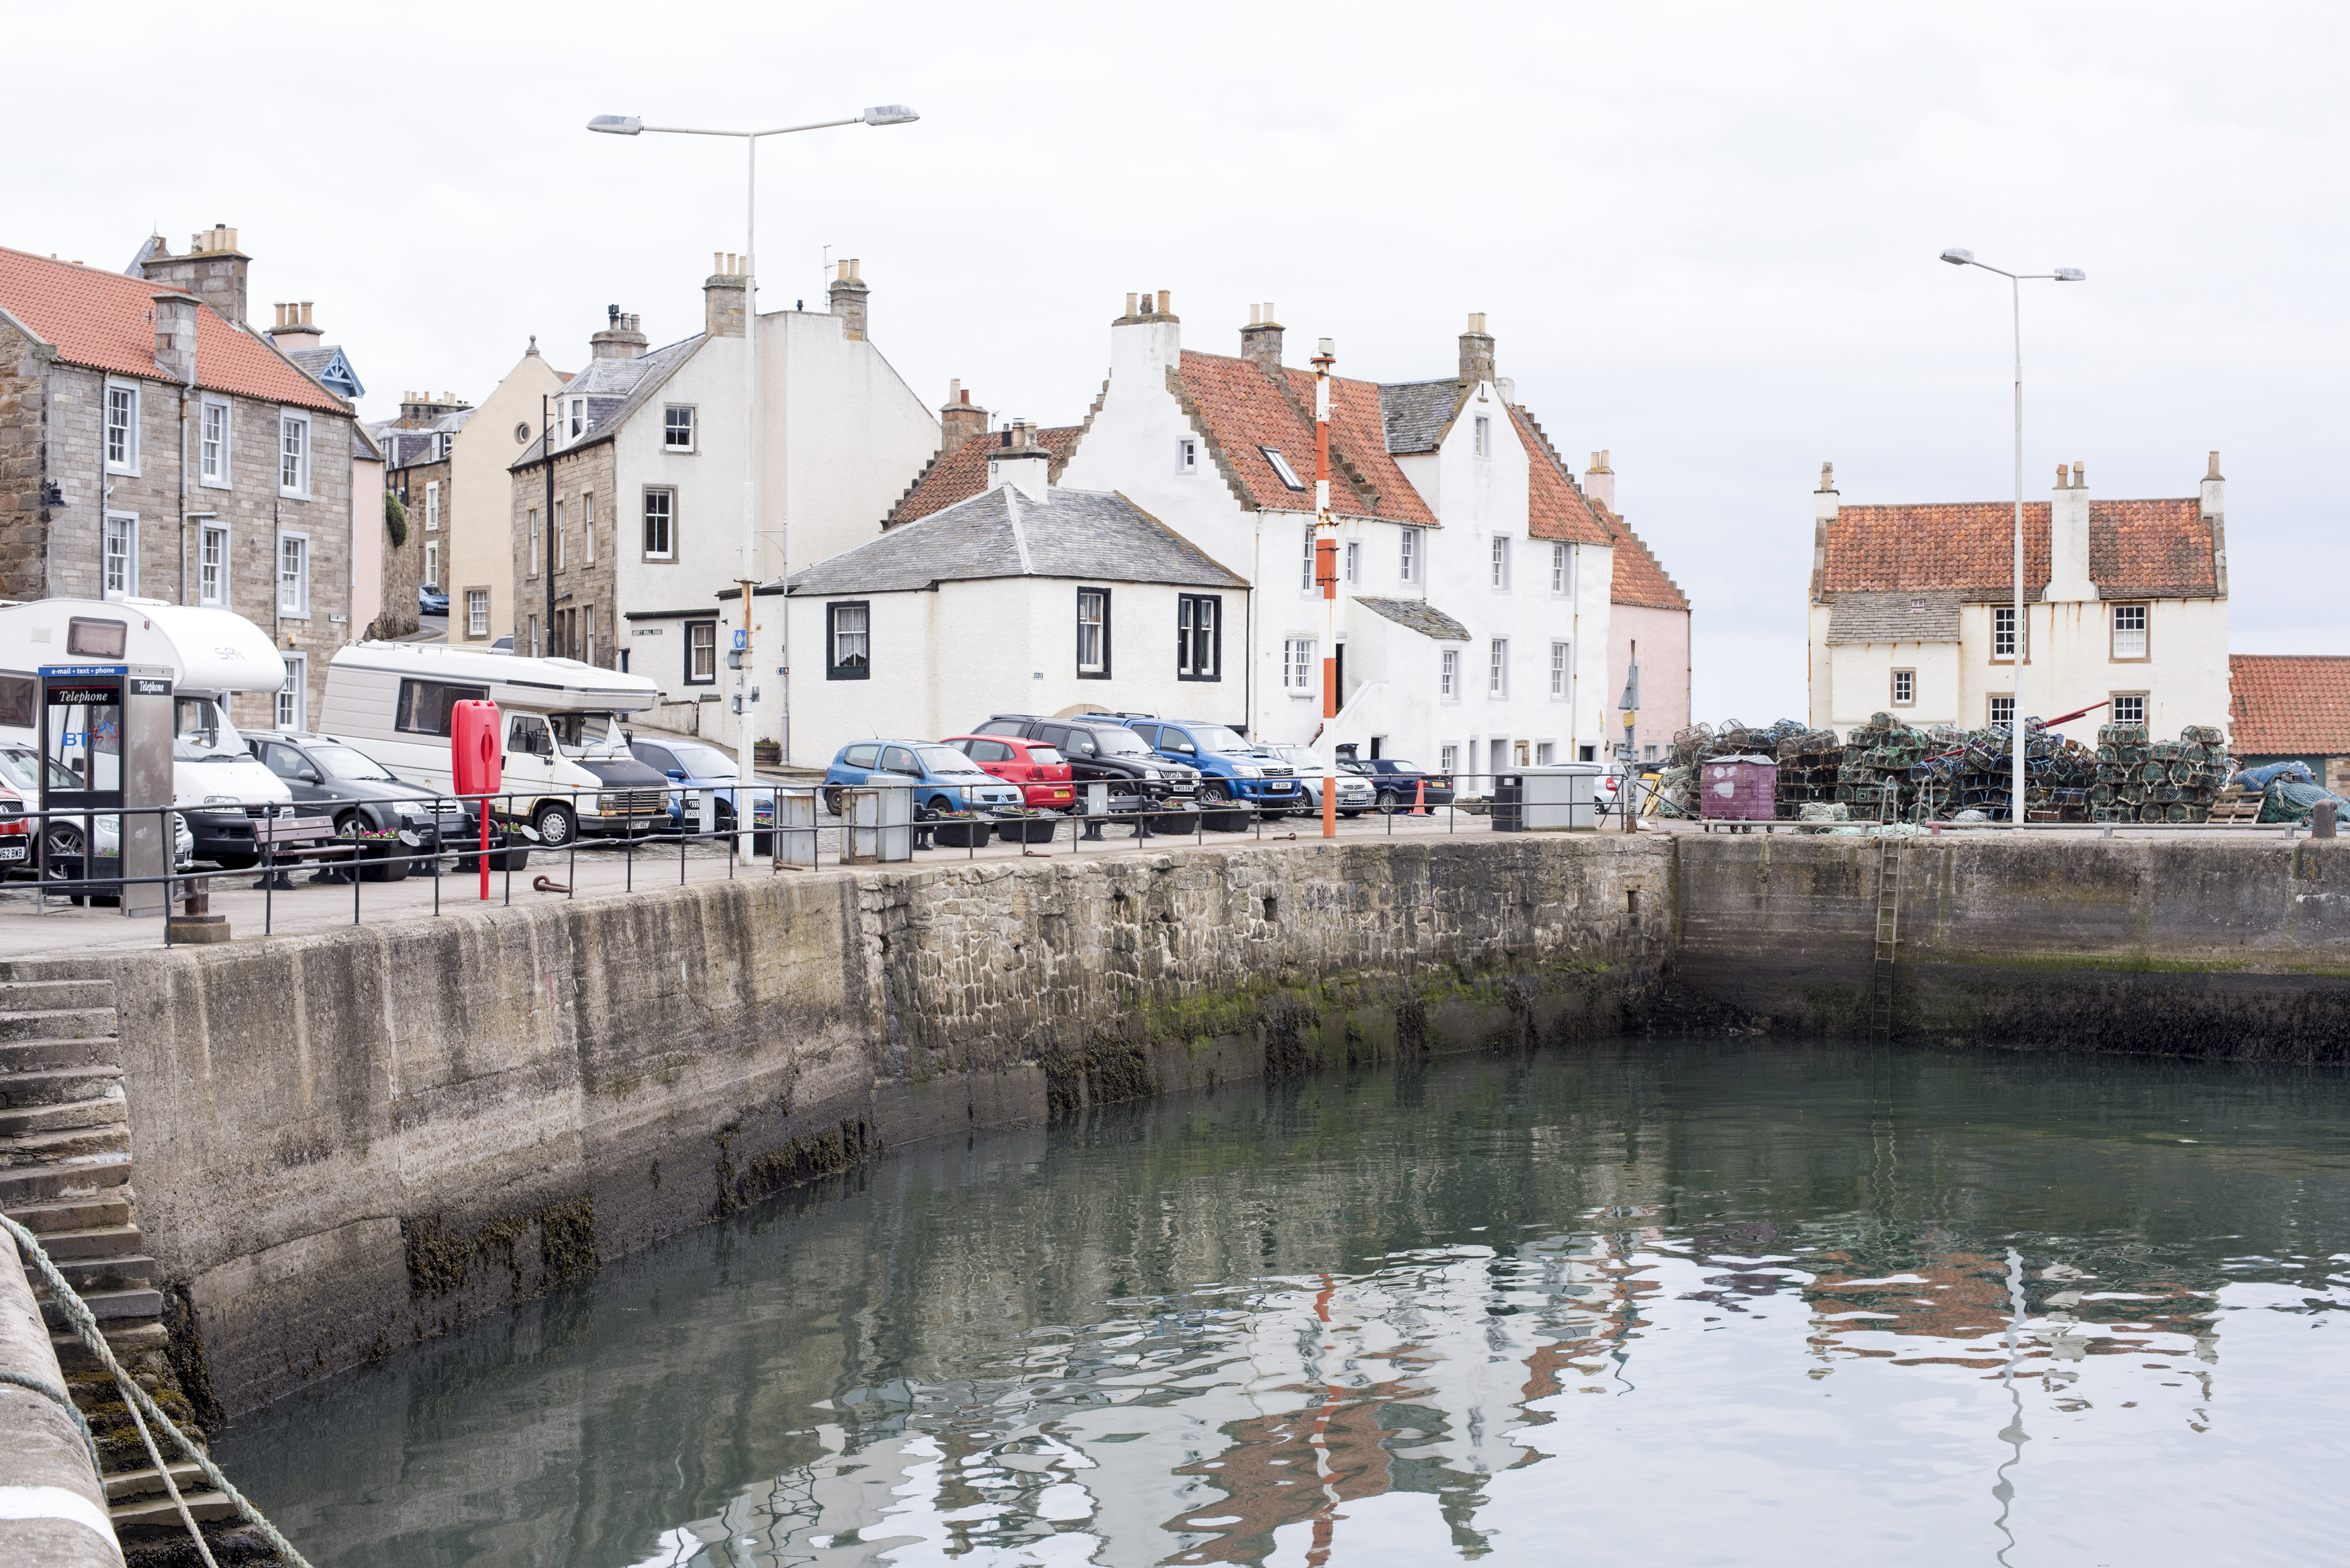 Cars and vans belonging to tourists parked around empty harbor at Pittenweem, Scotland